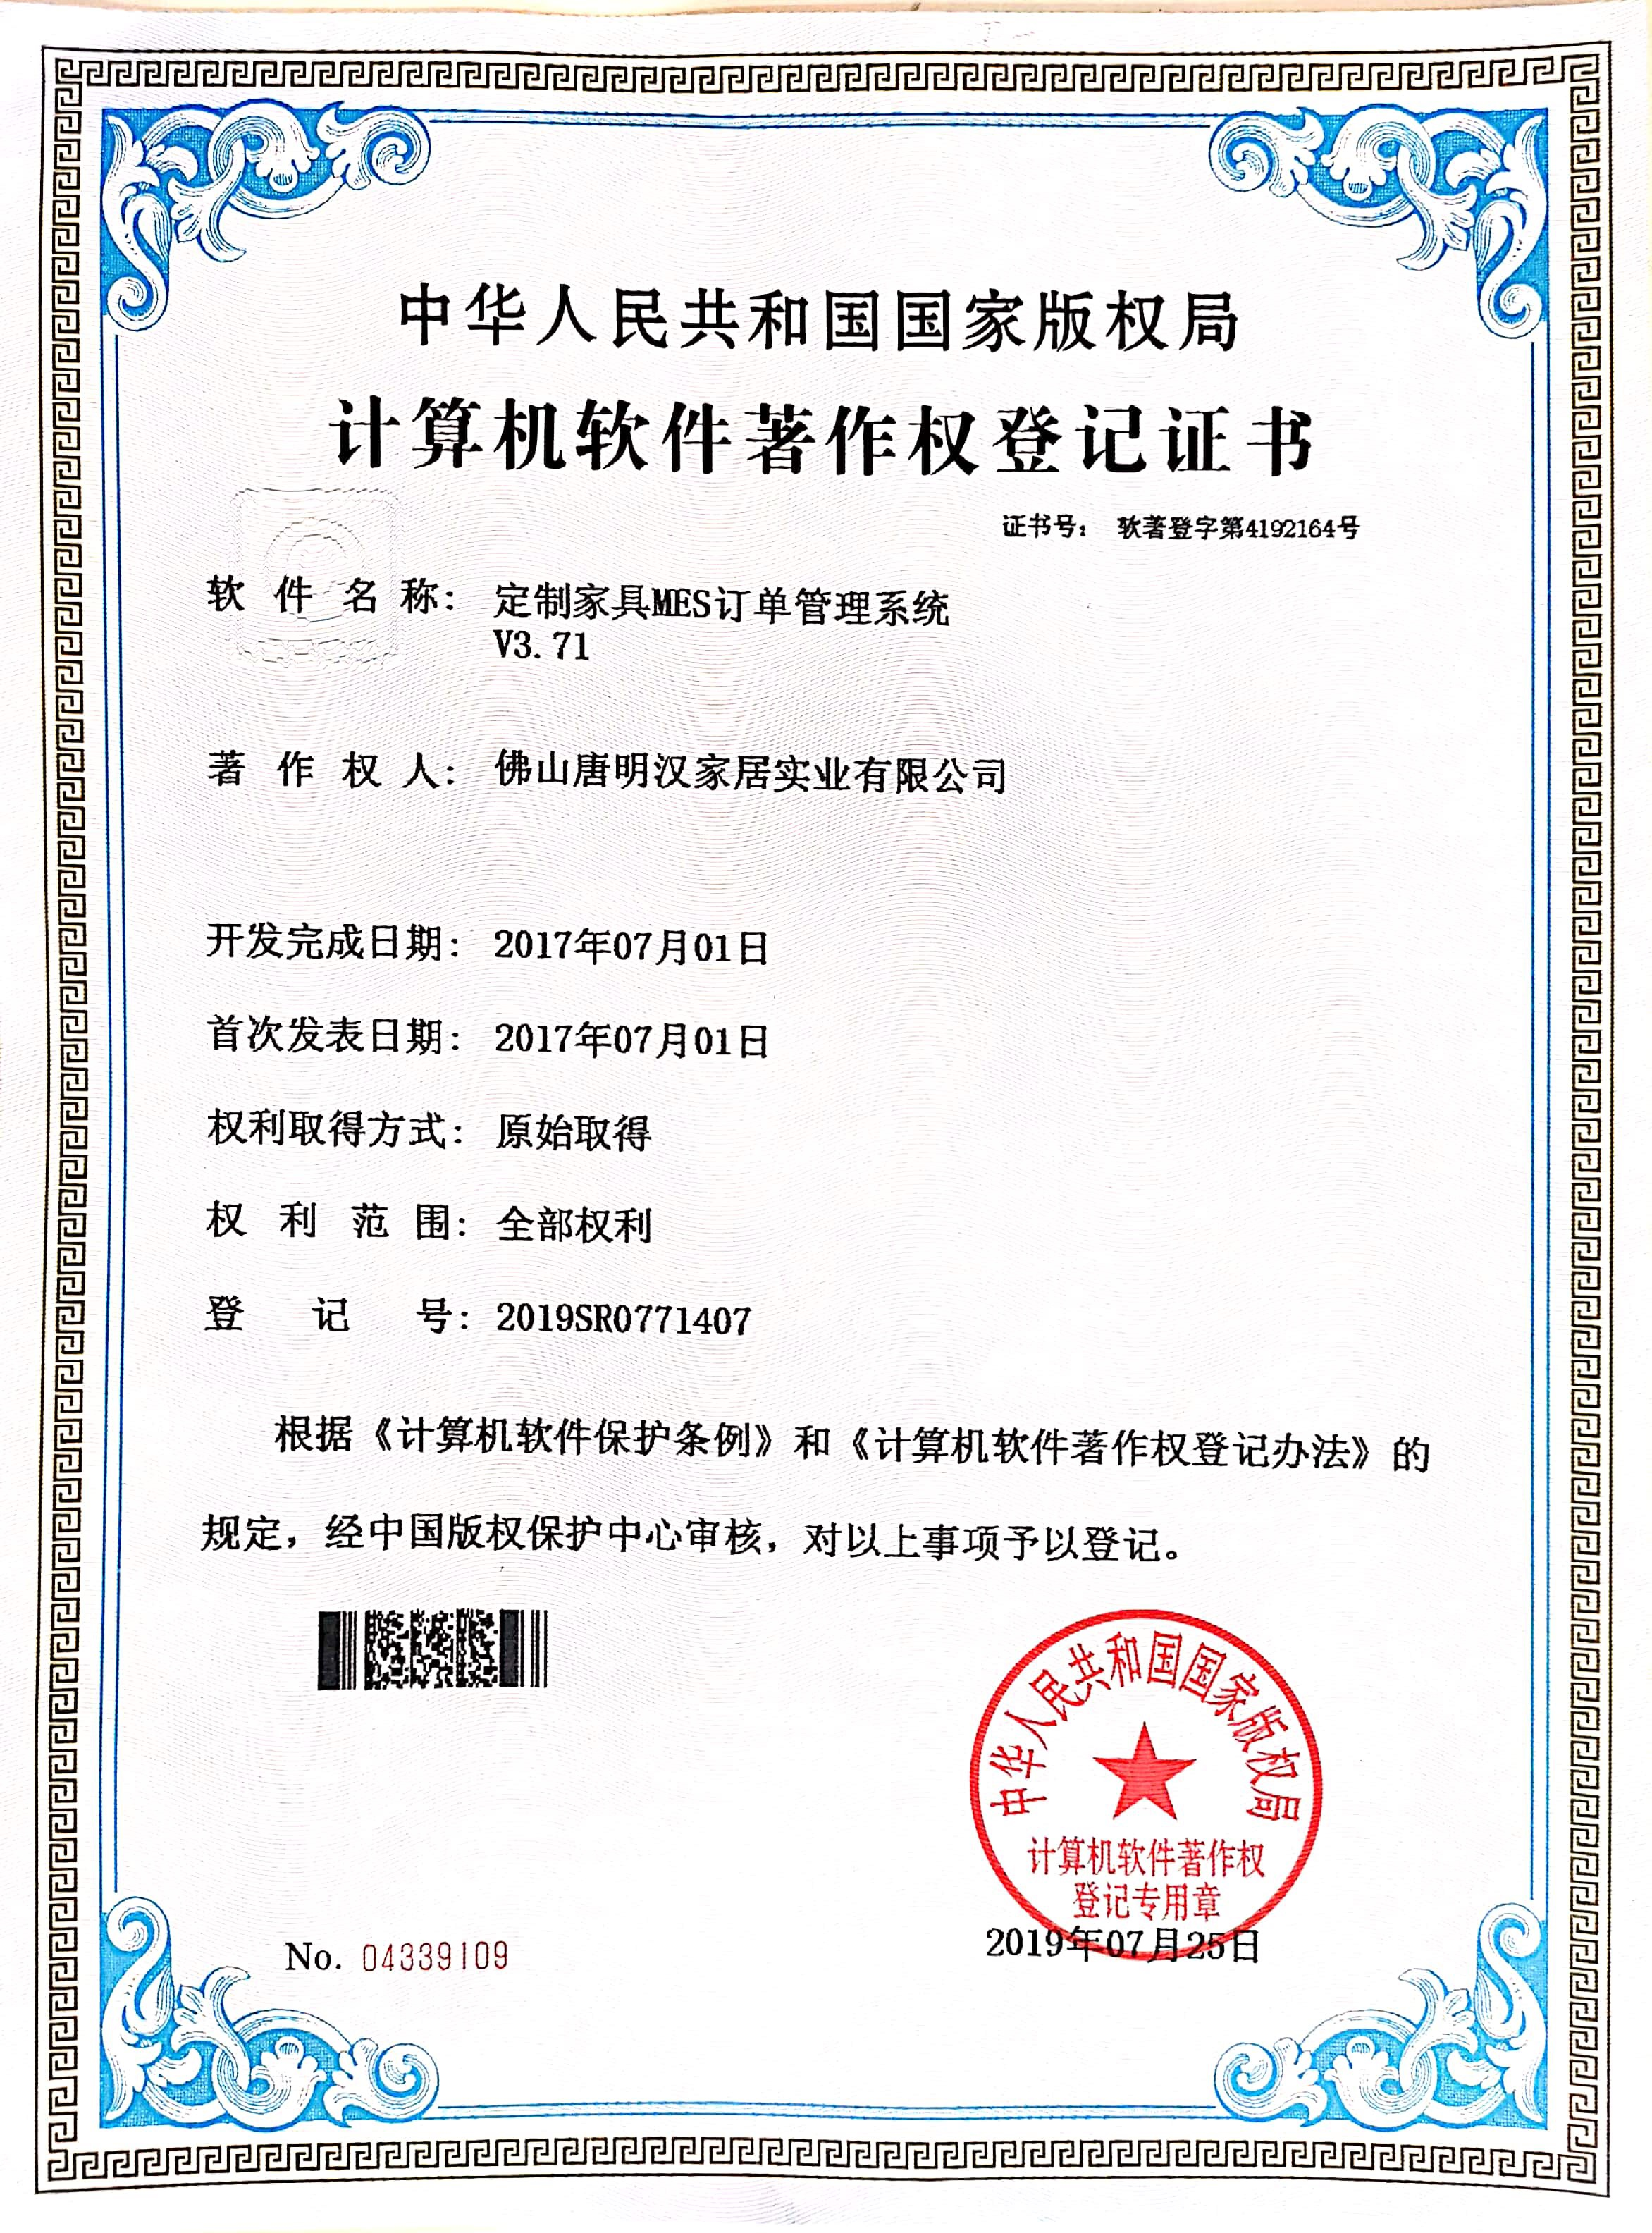 Customized furniture MES order management system v3.71 patent certificate